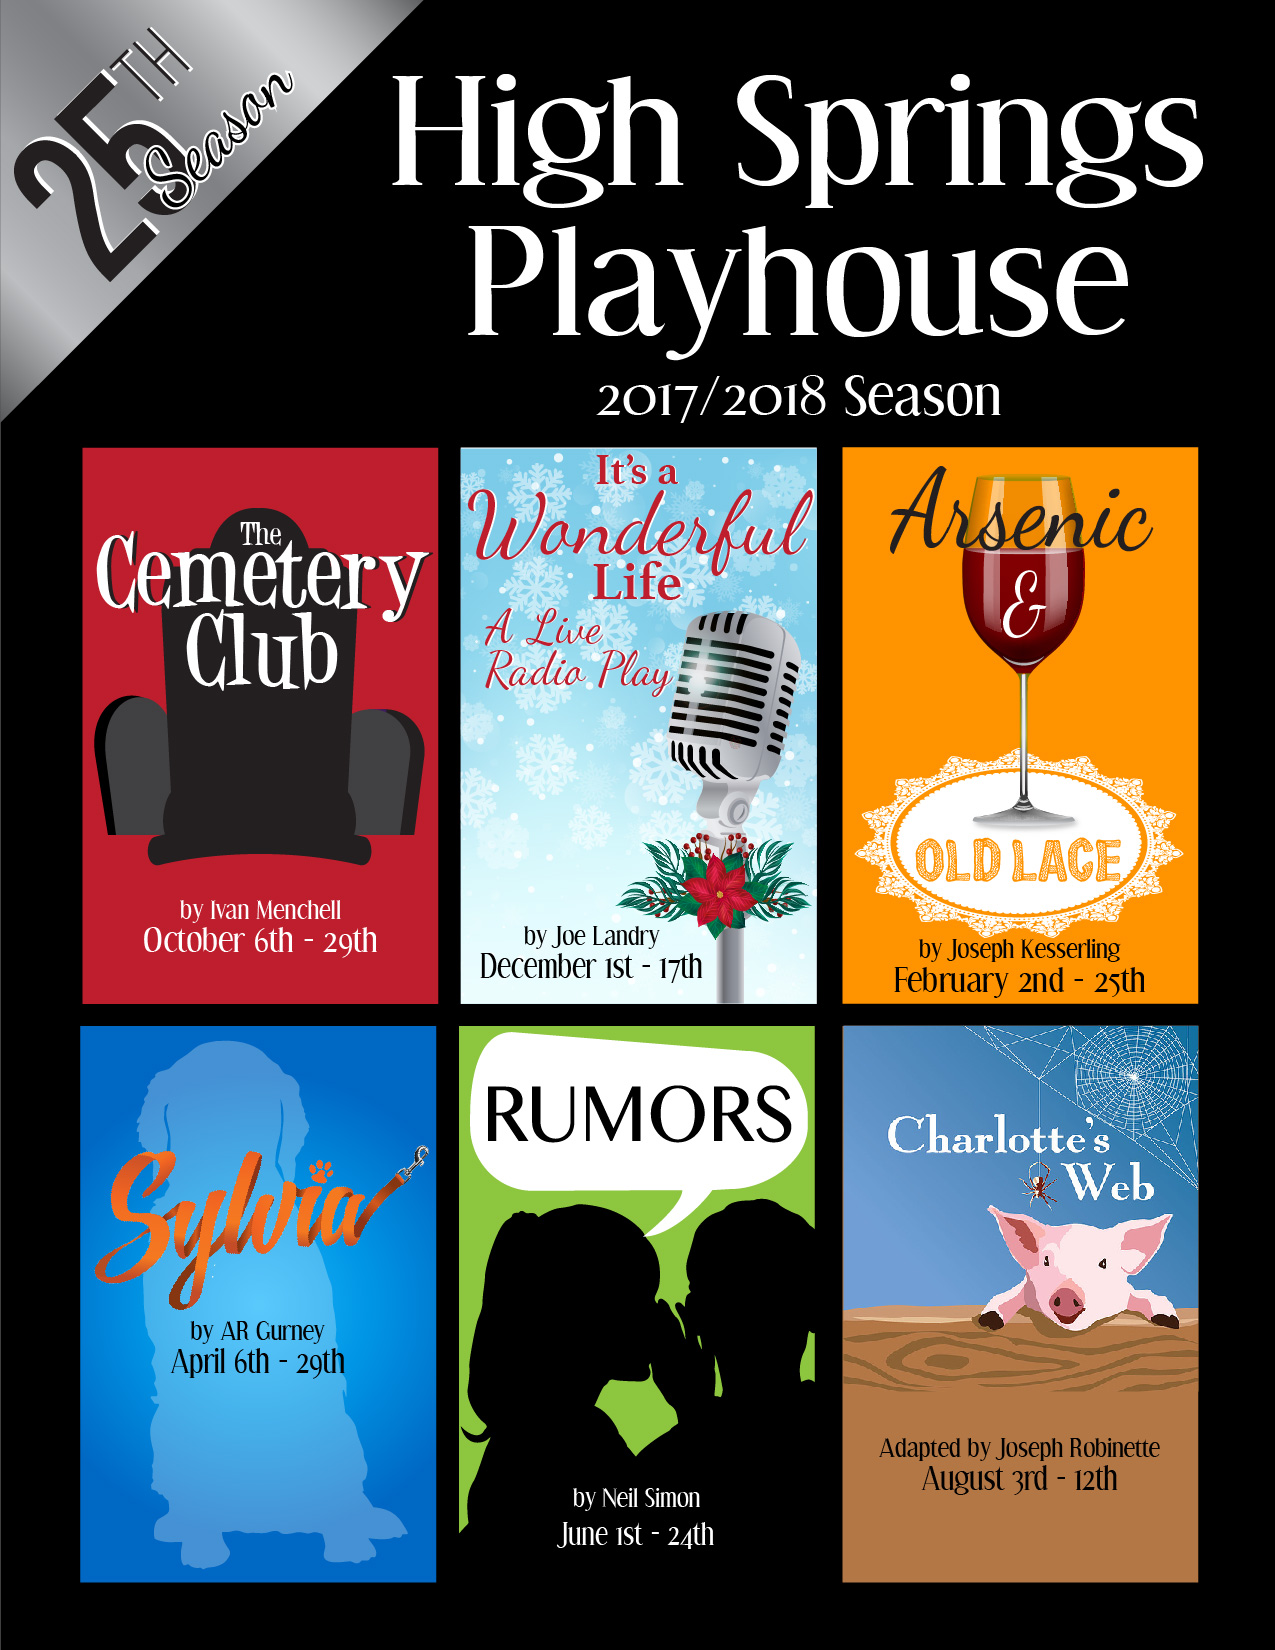 High Springs Playhouse 2017/2018 Season Schedule